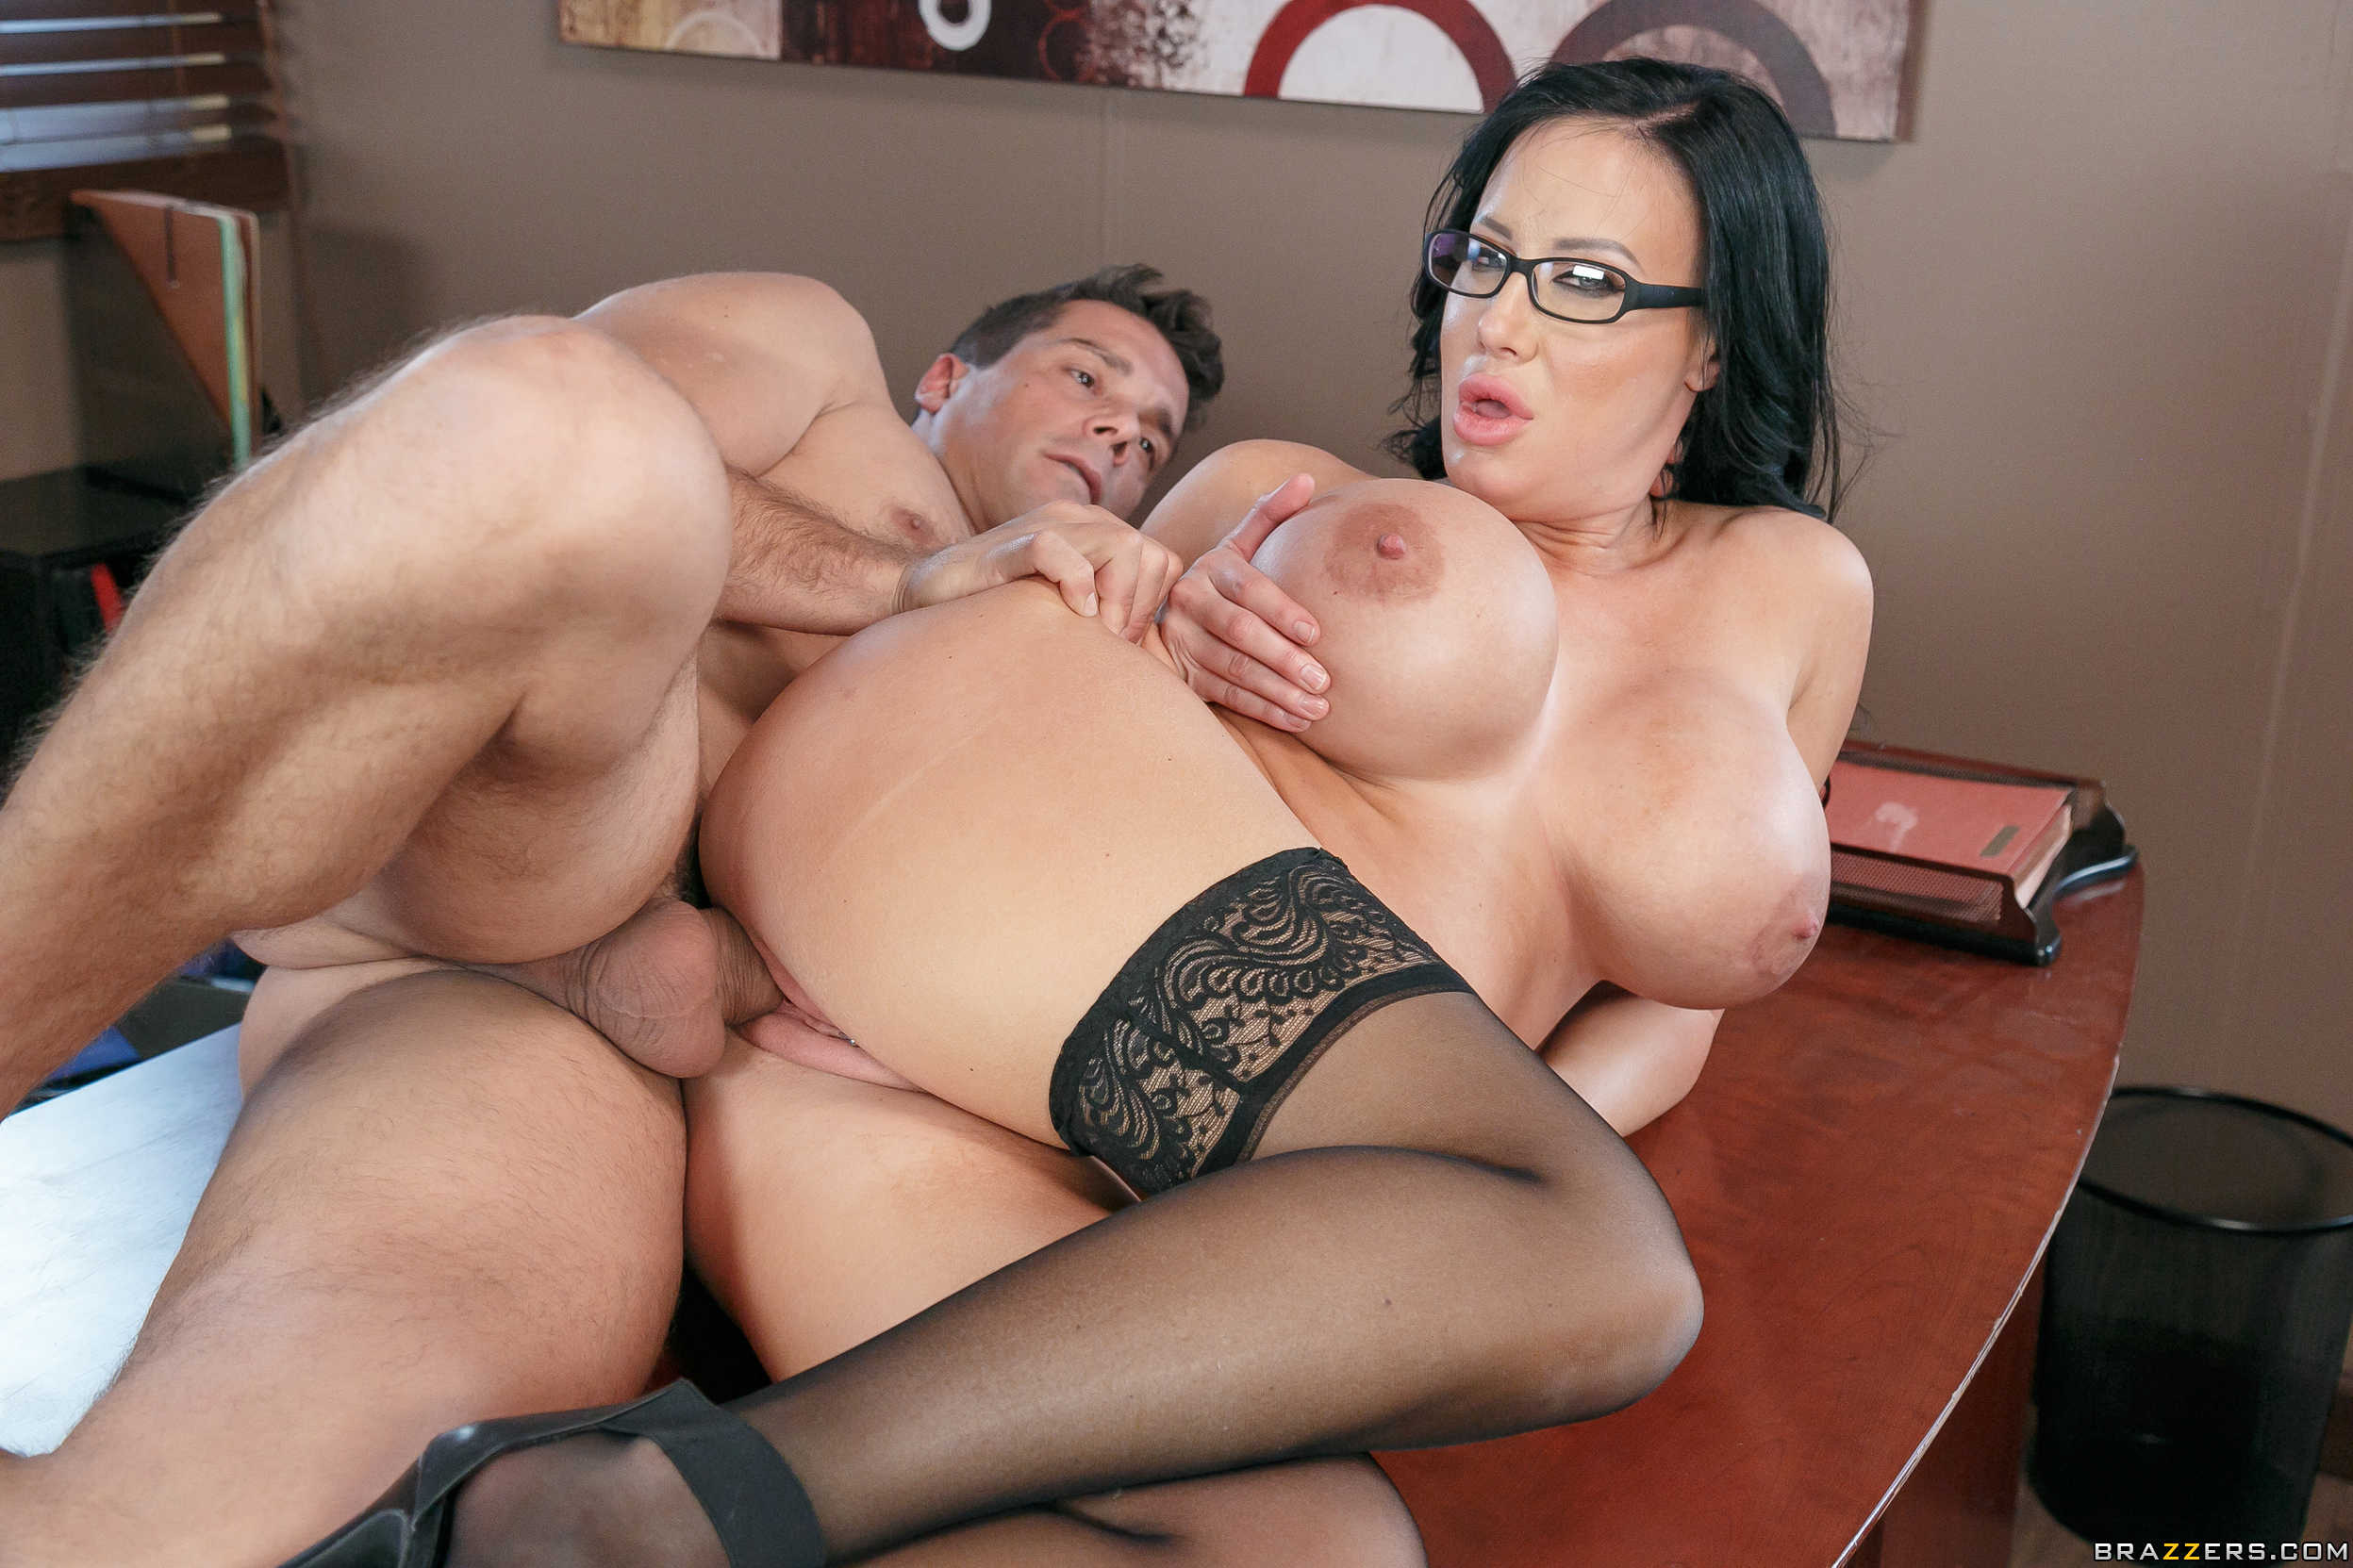 sybil stallone in our little secret ary brazzers love